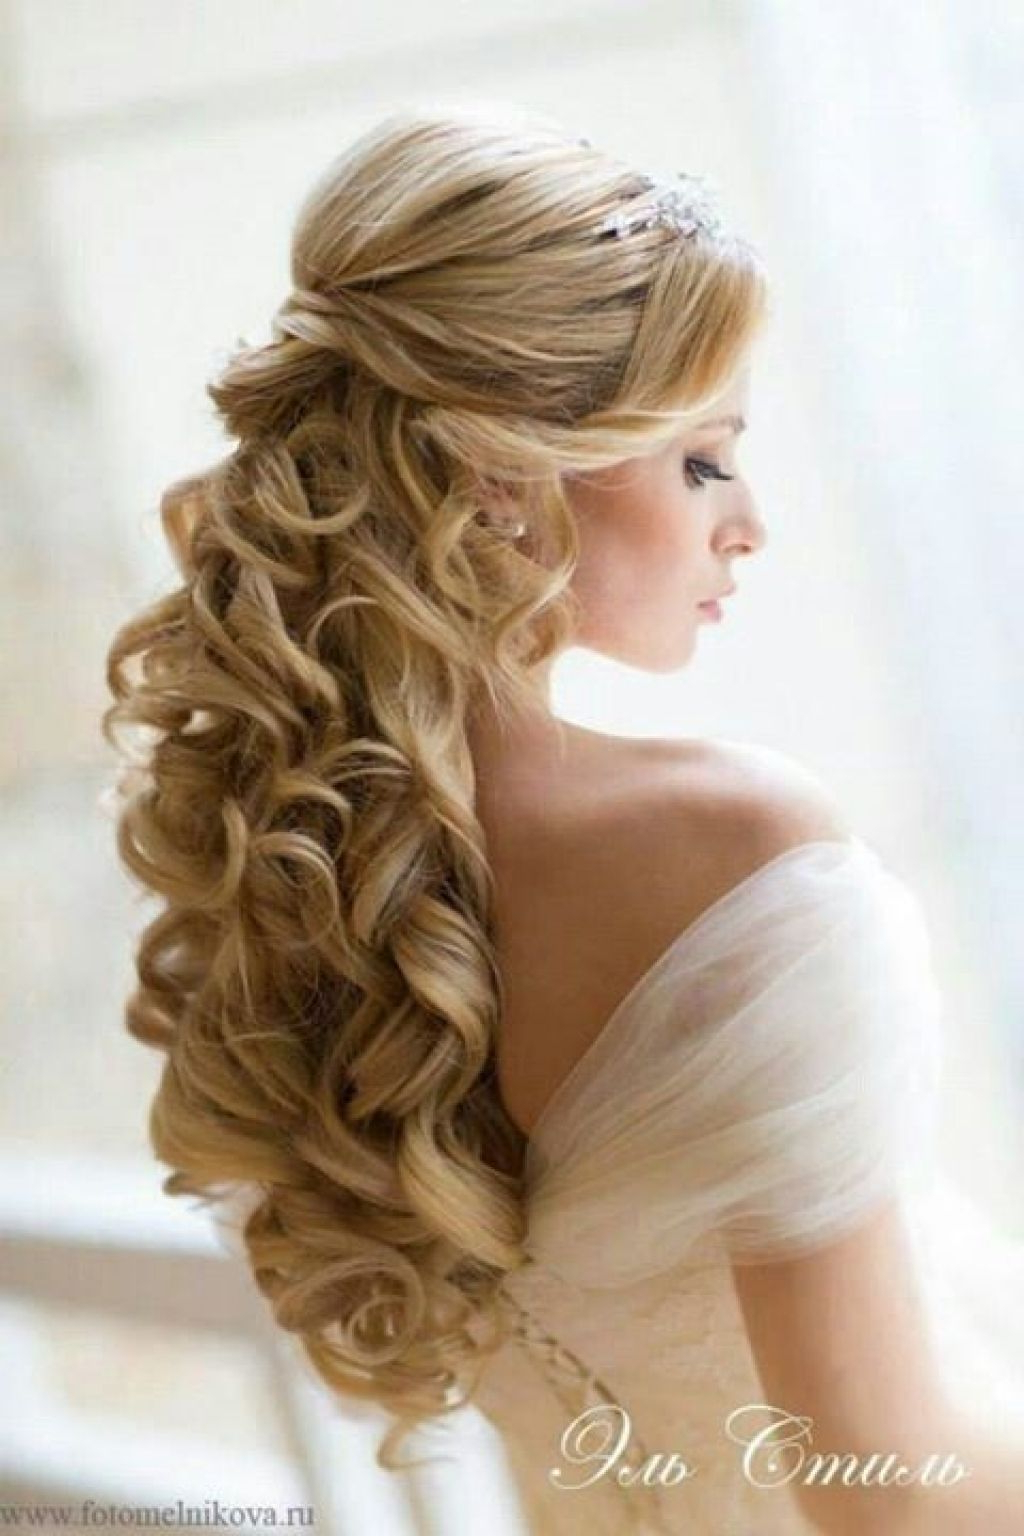 Favorite Half Up Wedding Hairstyles With Jeweled Clip Regarding Wedding Hairstyles For Long Hair Half Up Dfemale Beauty Tips Easy (Gallery 3 of 20)